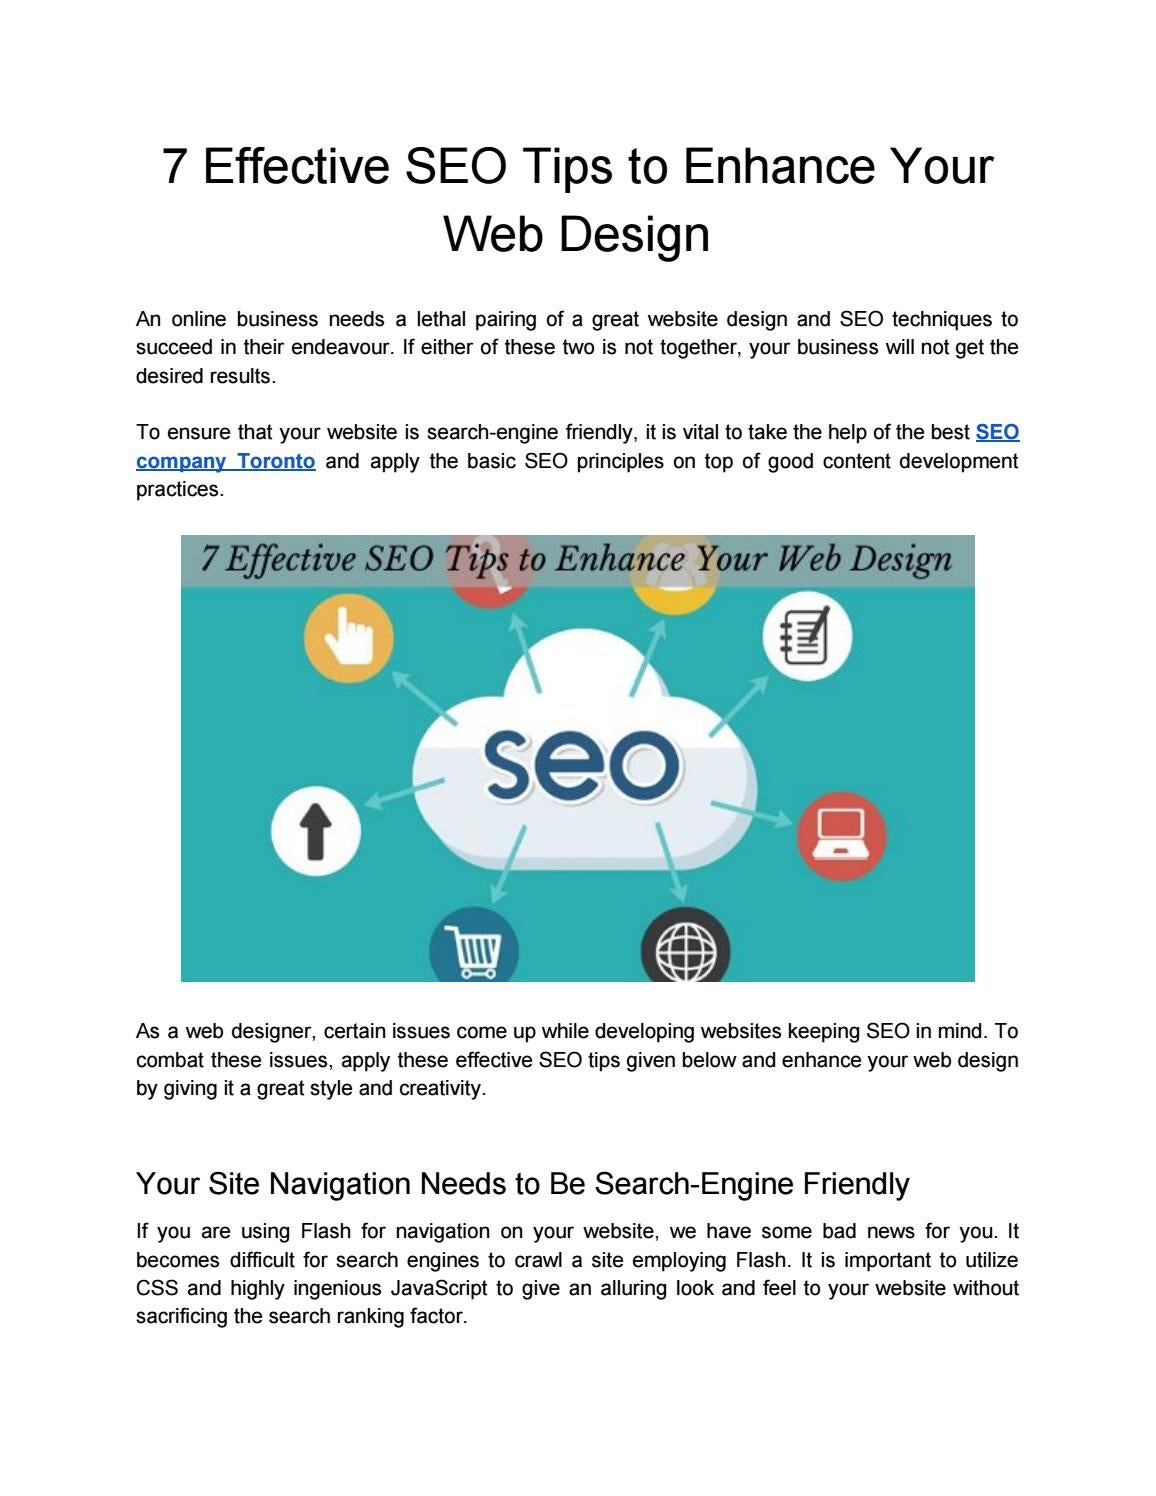 7 Effective Seo Tips To Enhance Your Web Design By Charles Smith Issuu